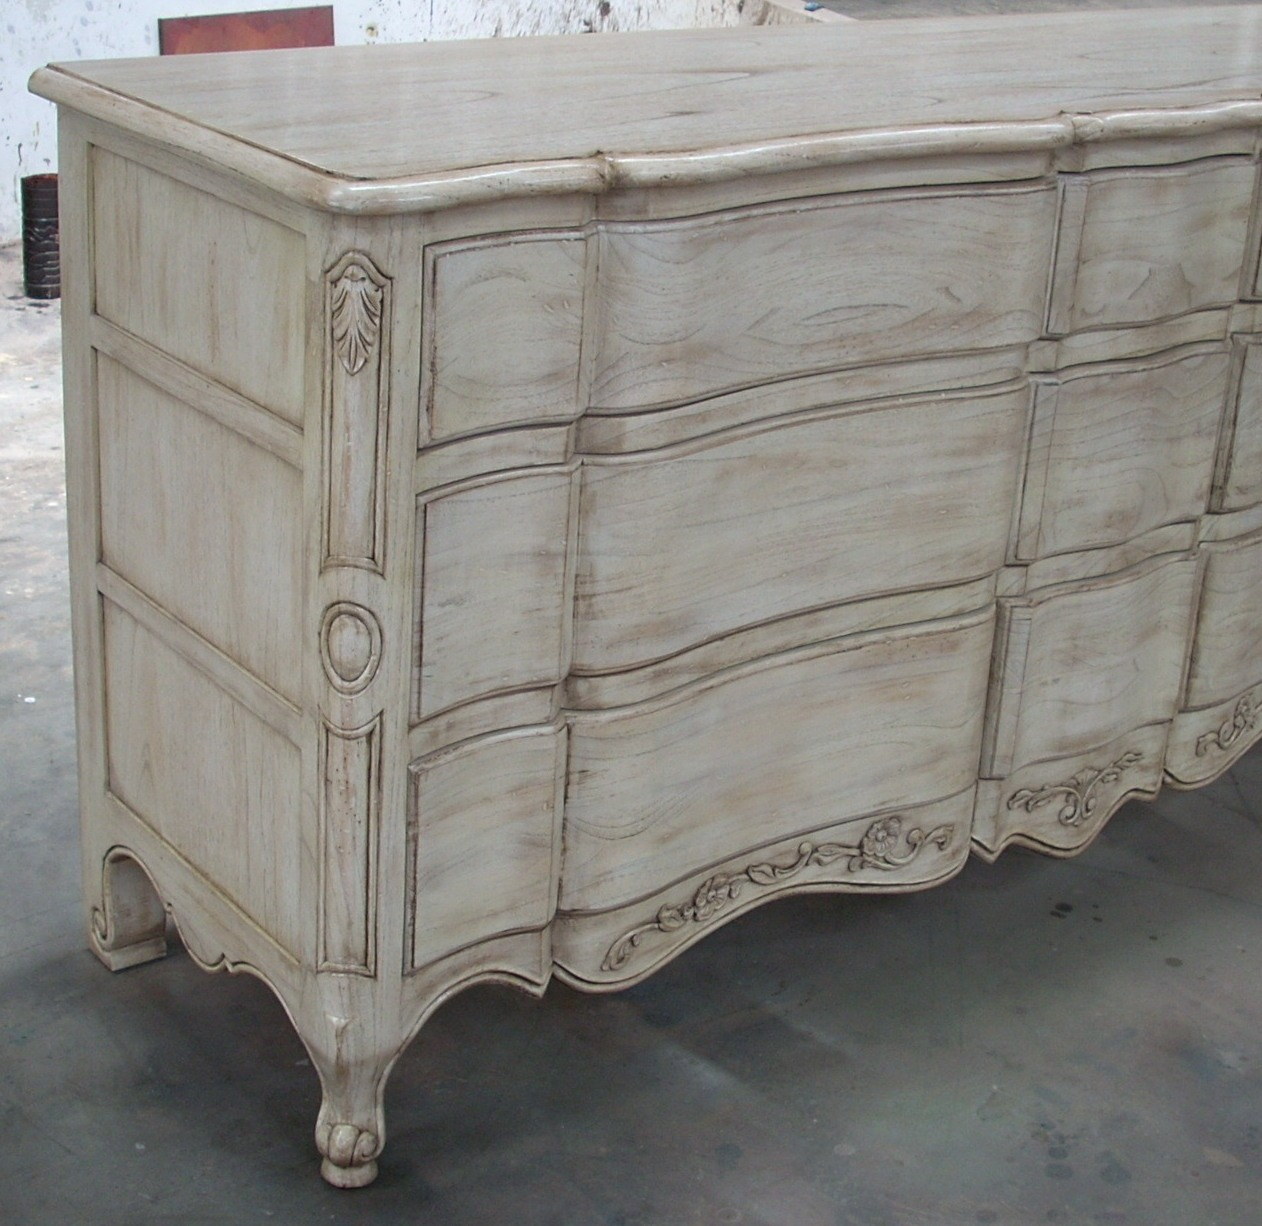 Wood Furniture: The Solid Color With The Grain Character Of The Wood